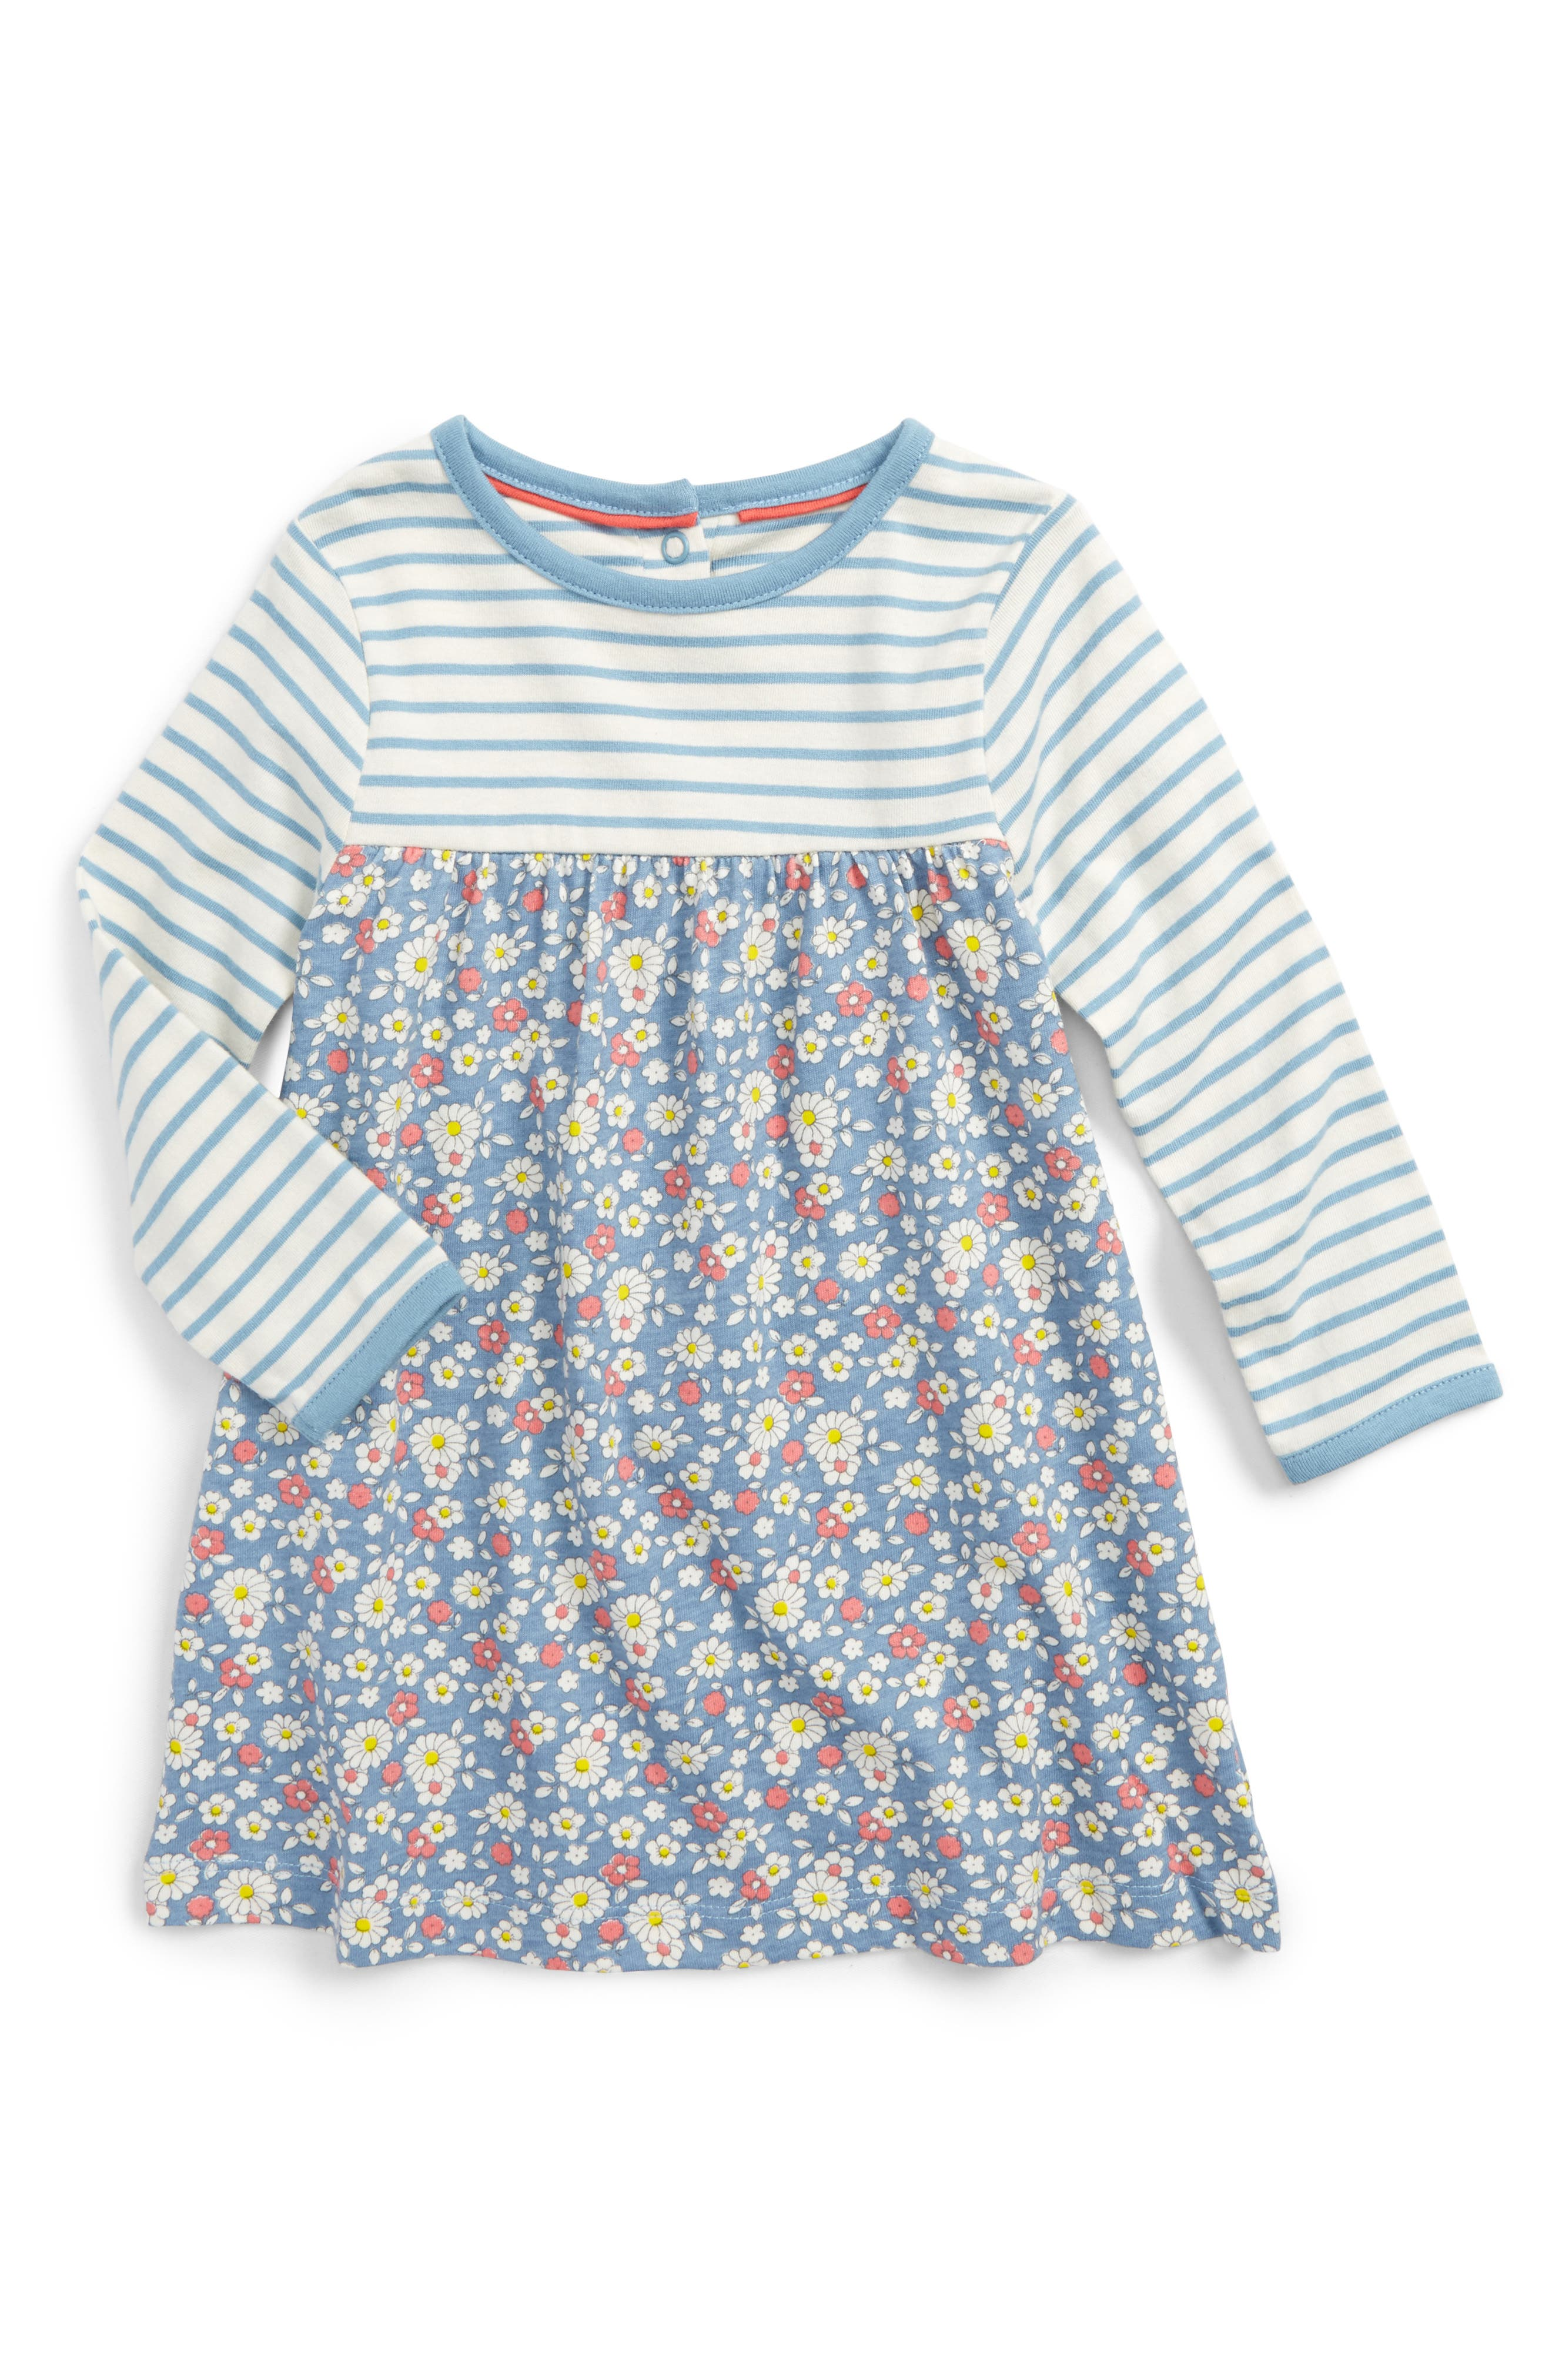 Main Image - Mini Boden Hotchpotch Dress (Baby Girls & Toddler Girls)